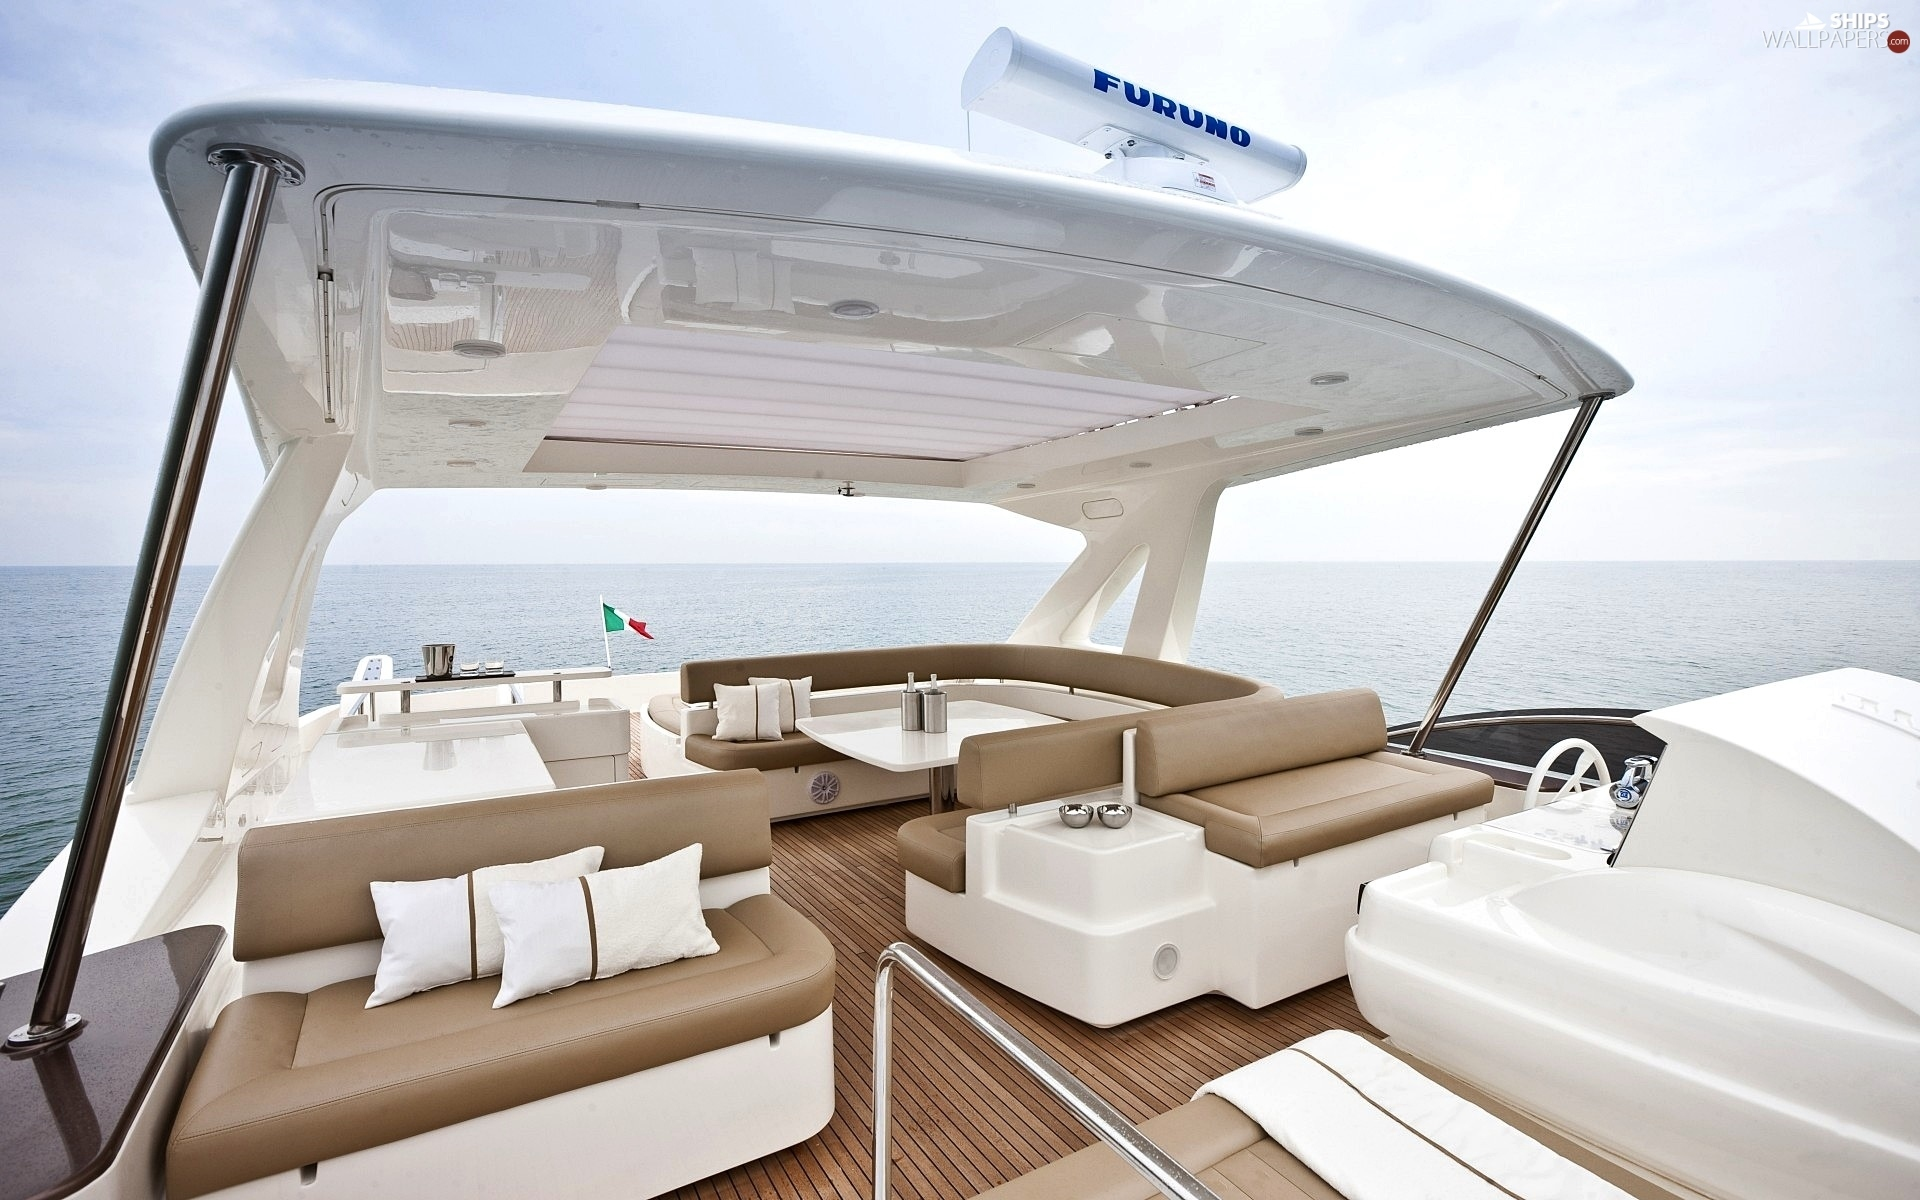 http://wewinelovers.wehomeowners.com/wp-content/uploads/2016/07/Yacht-Photo_002.jpg